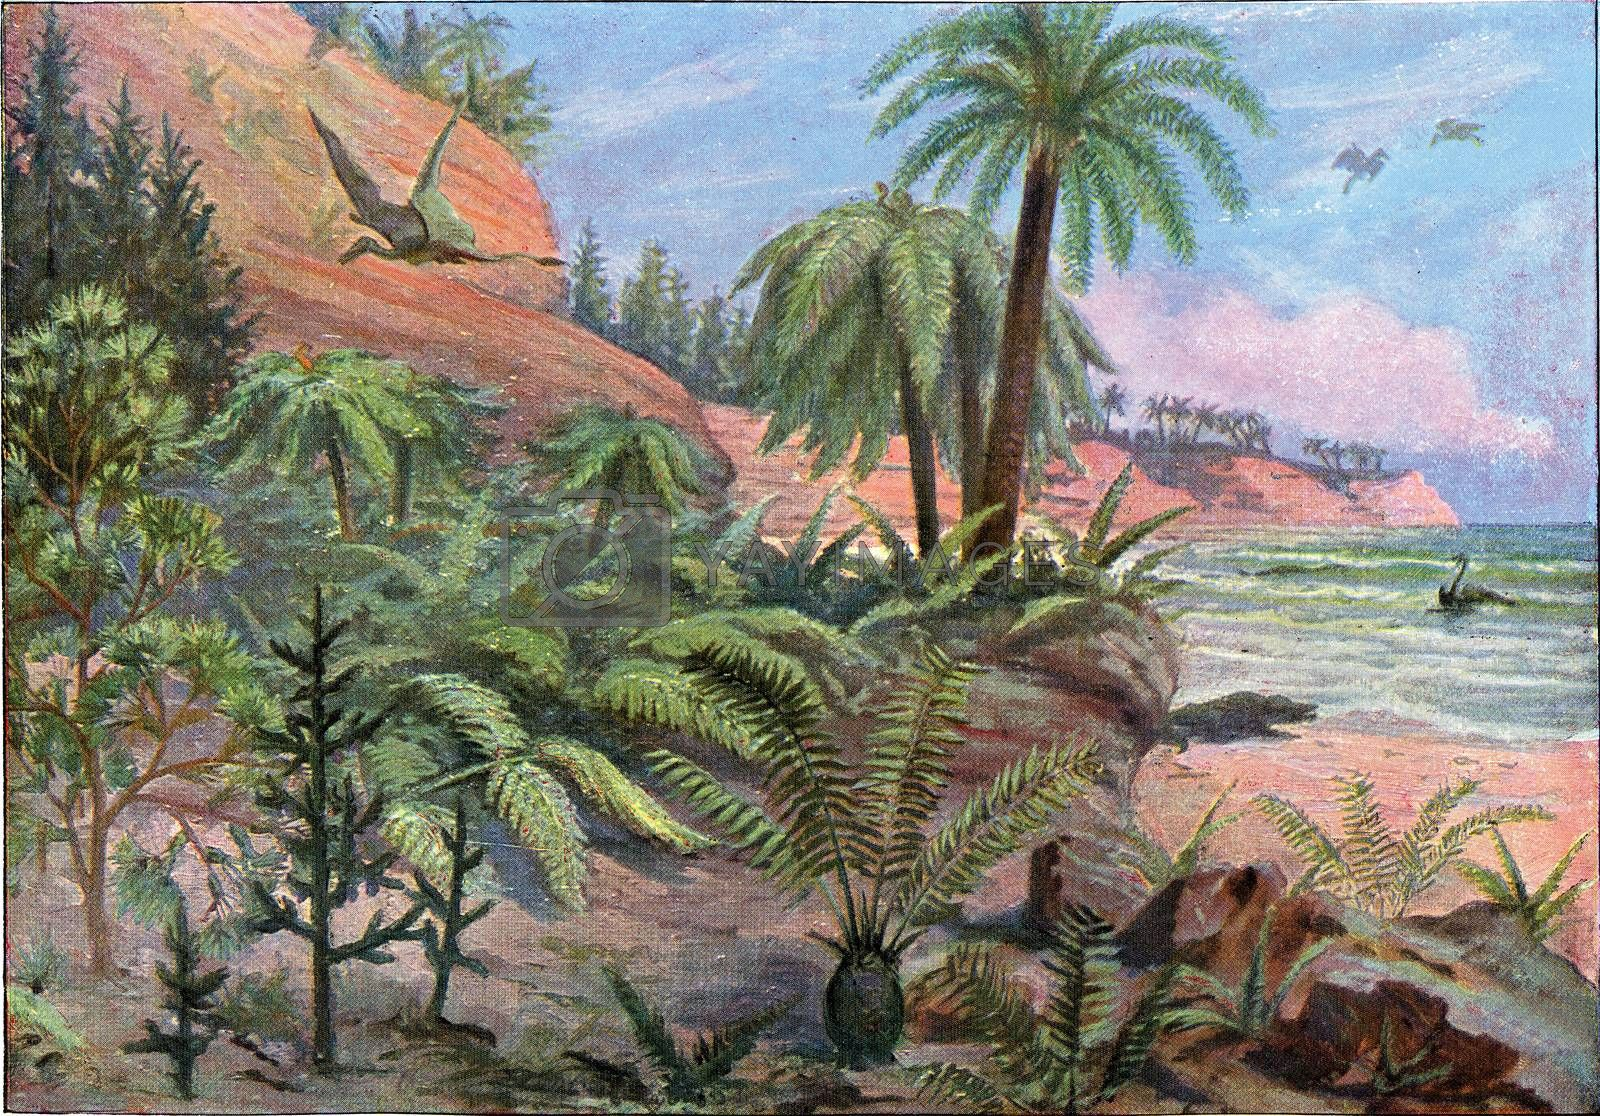 Landscape of the Jurassic Period, vintage engraved illustration. From the Universe and Humanity, 1910.